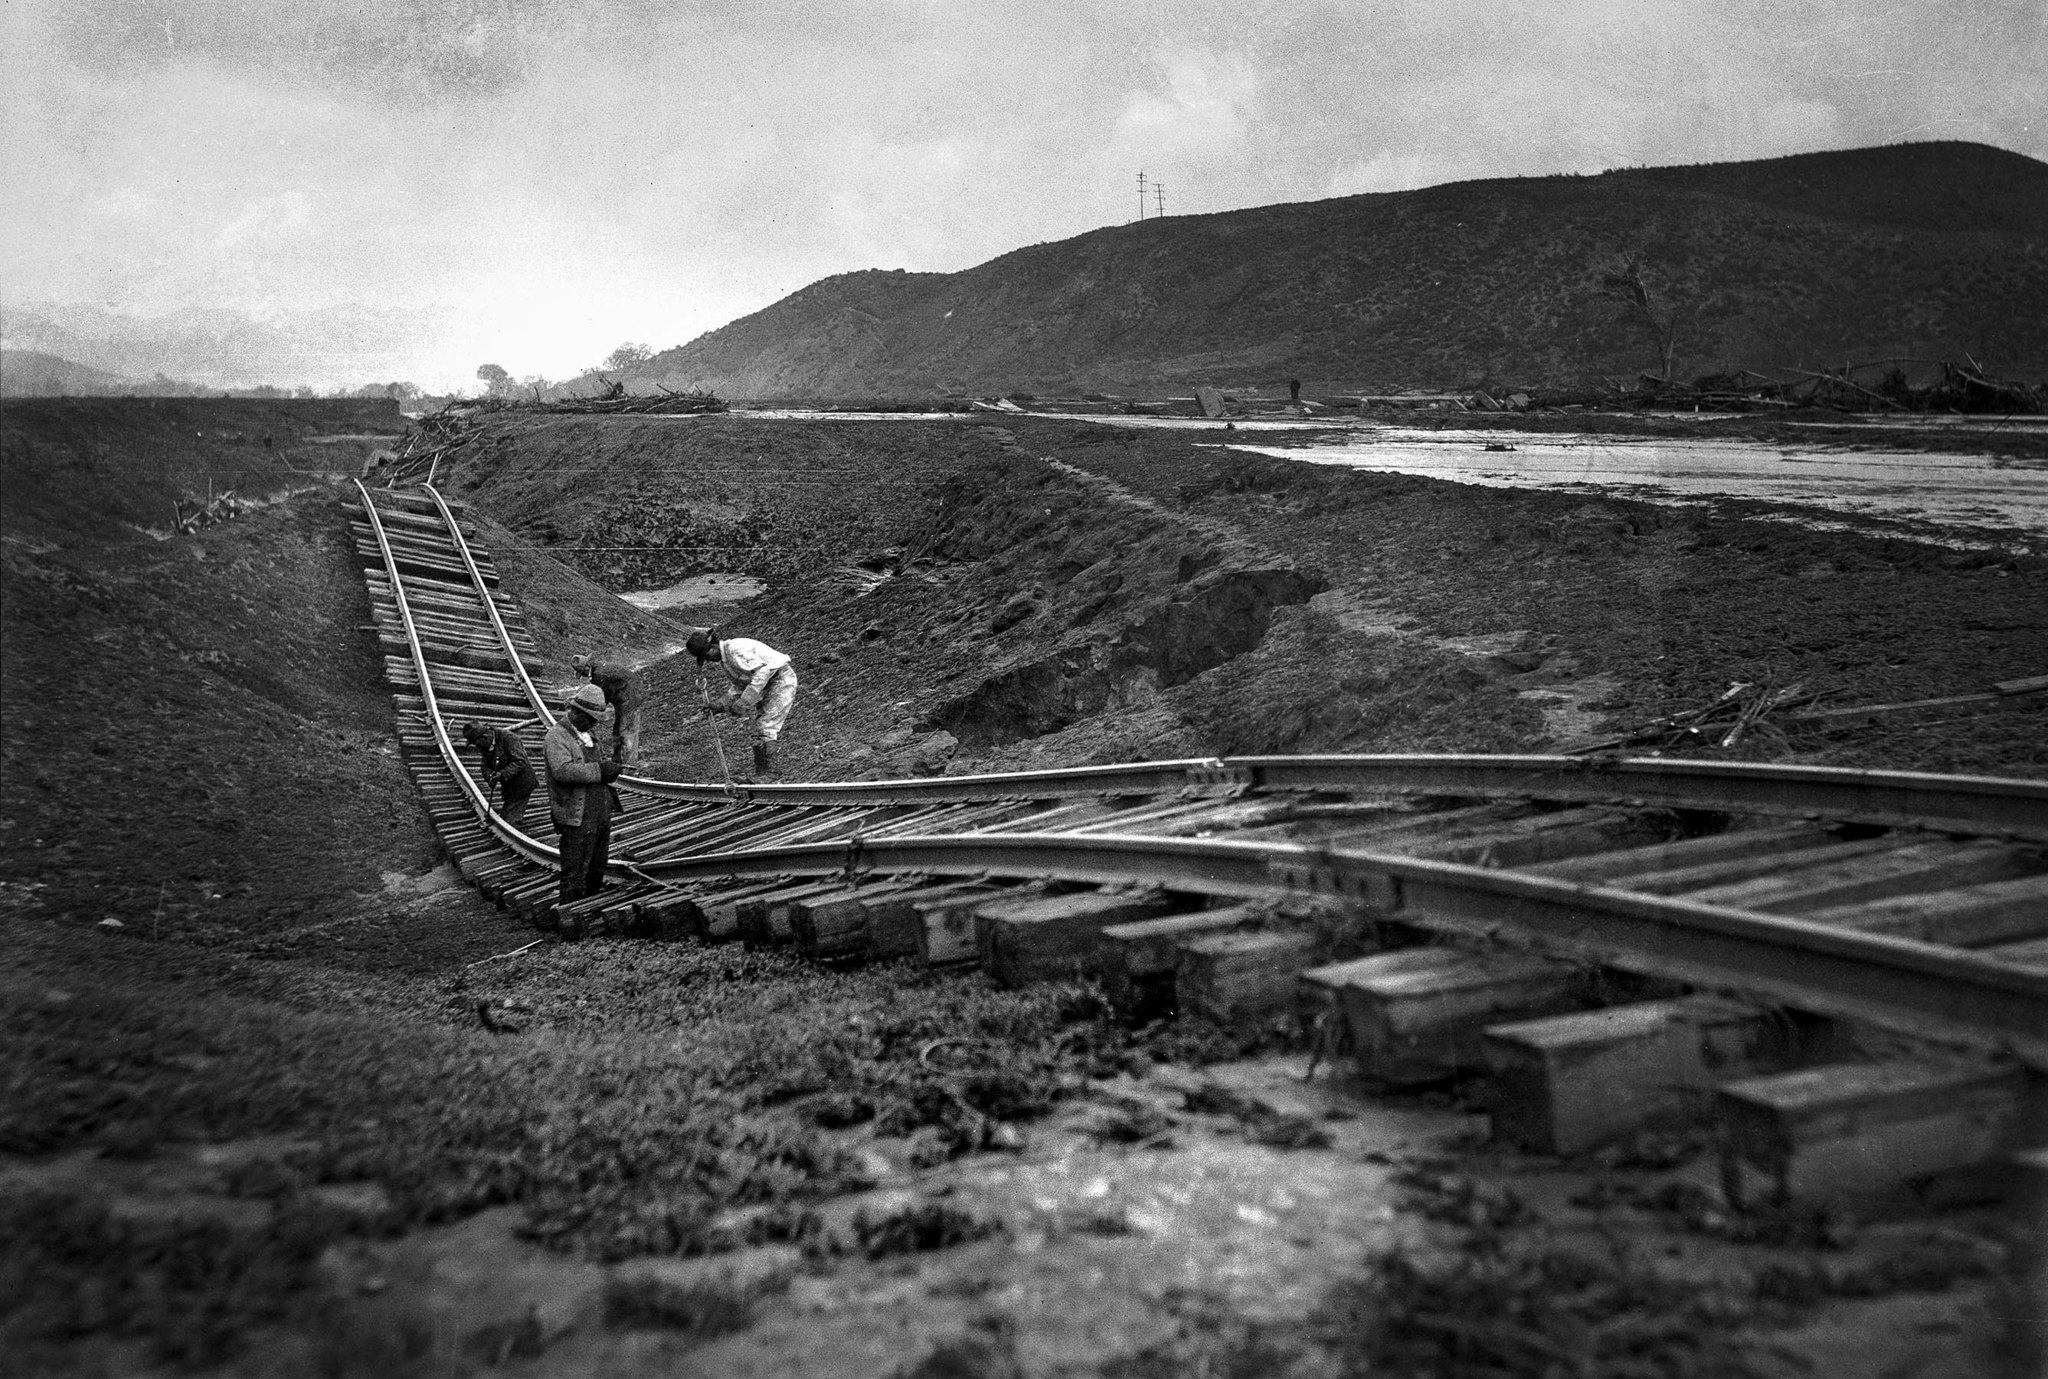 March 13, 1928: Flood twisted railroad track at Castaic on the Santa Paula-Montalvo branch of Southe